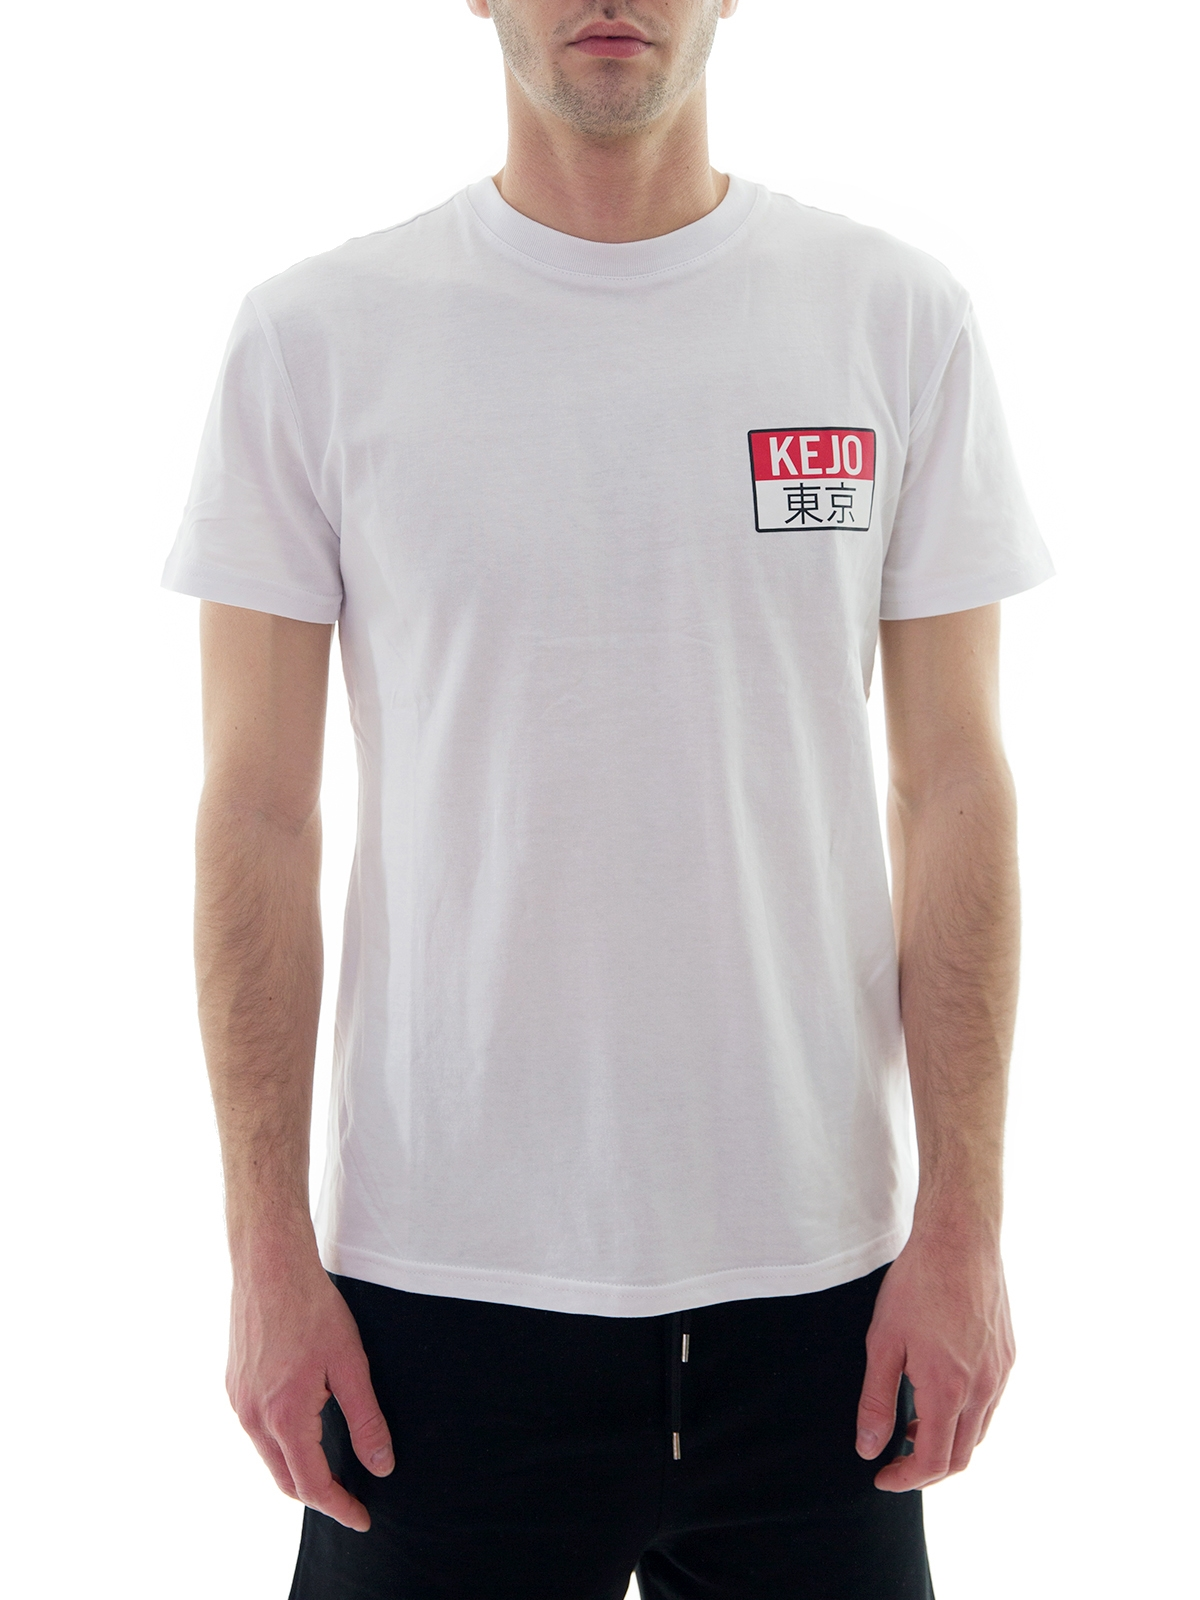 Kejo T-Shirt KS19 119M